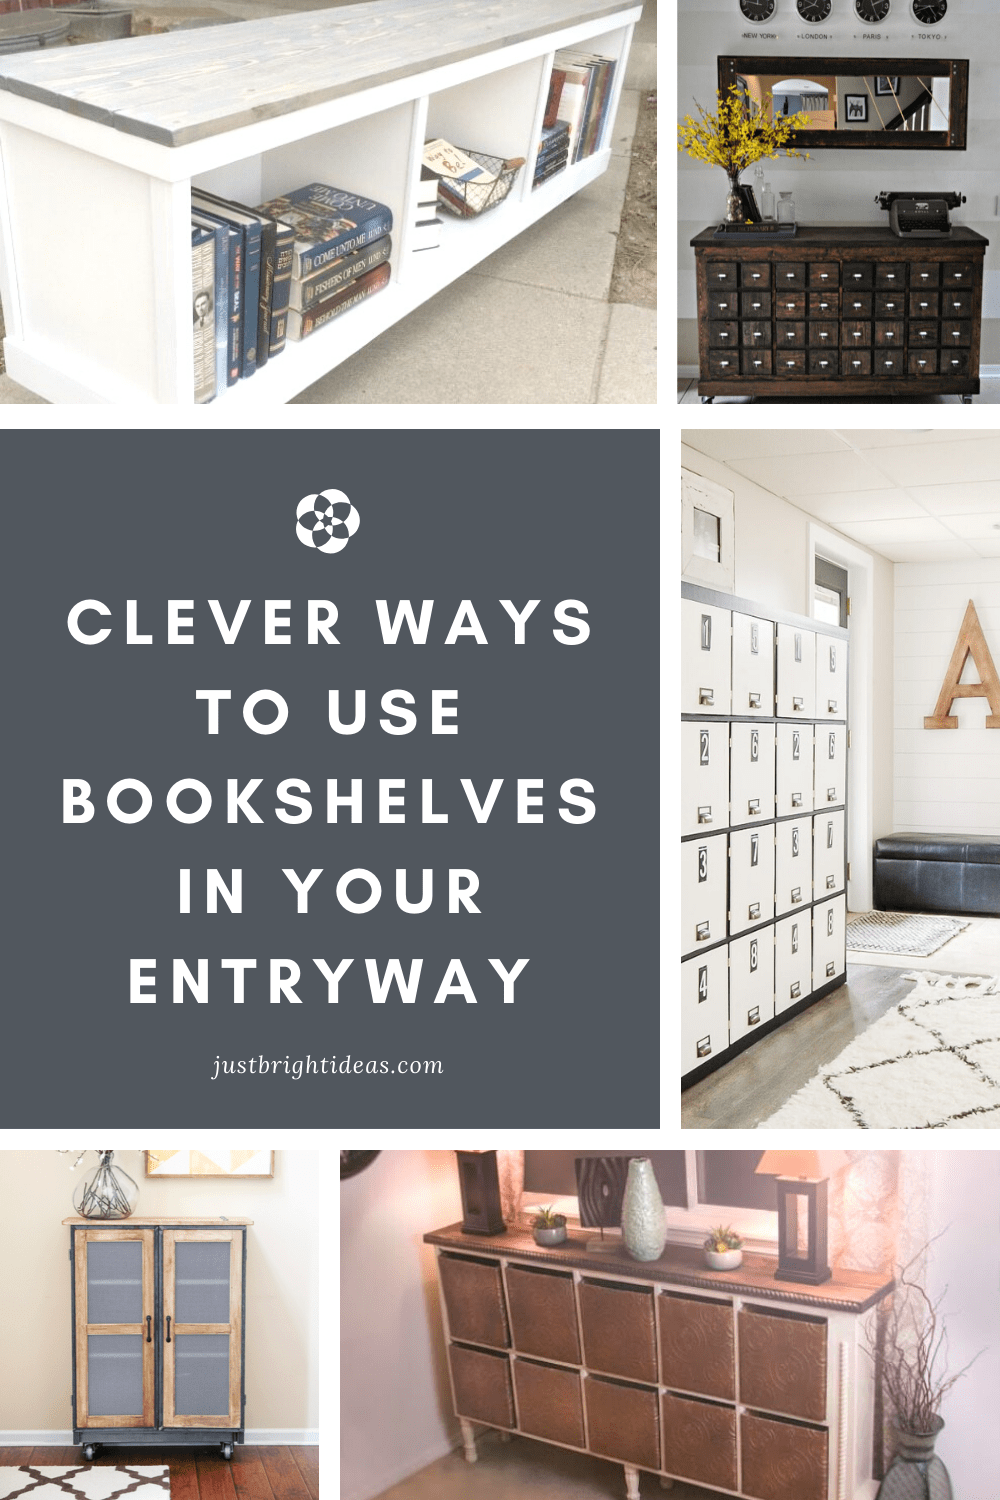 These repurposed bookshelf projects into entryway storage are totally genius